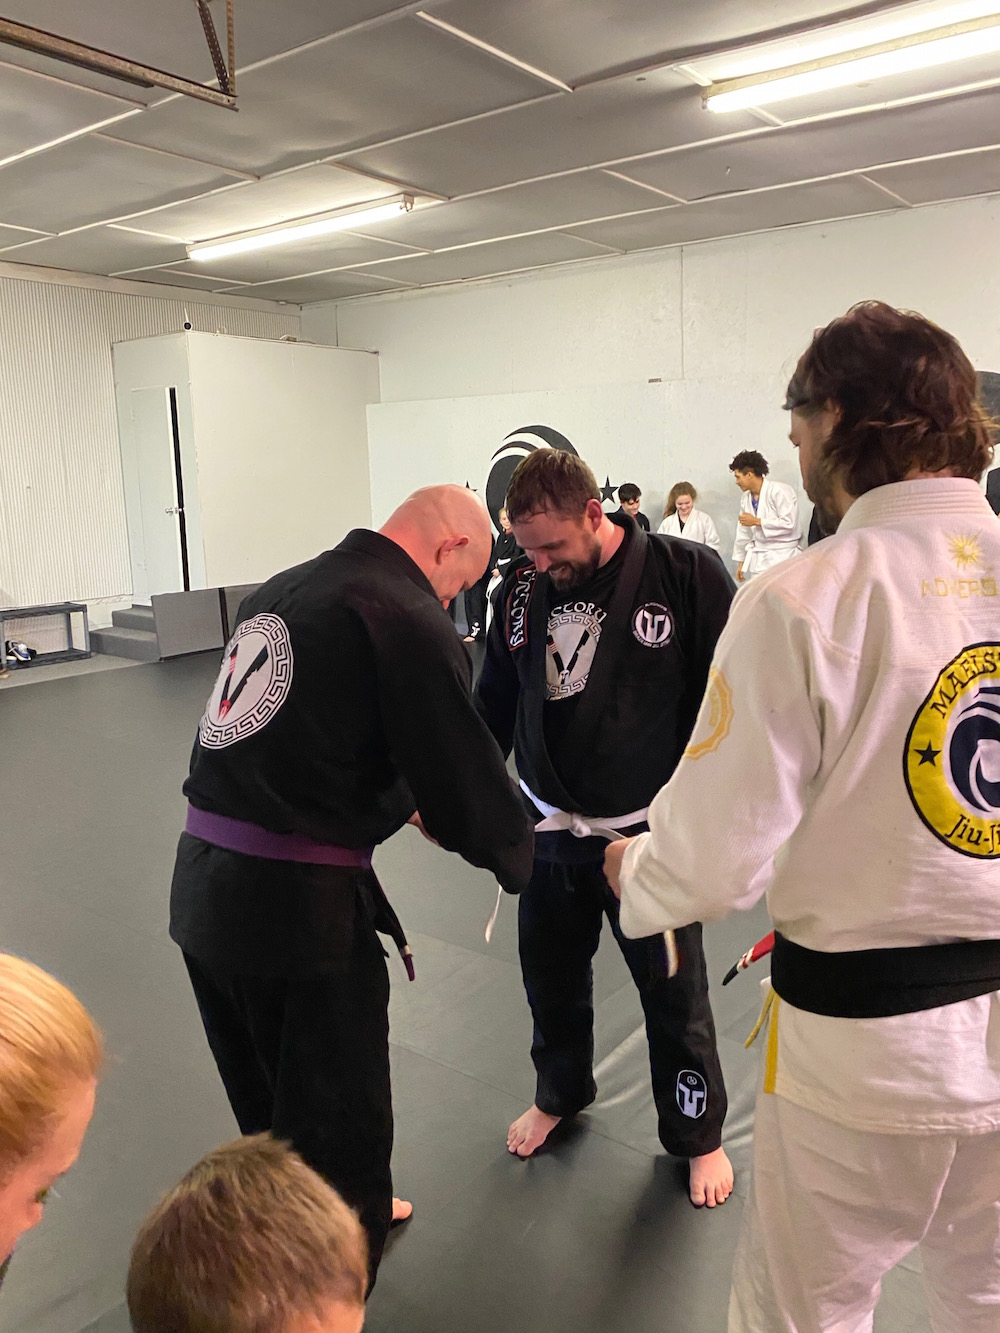 Jiu Jitsu for Beginners - getting a stripe